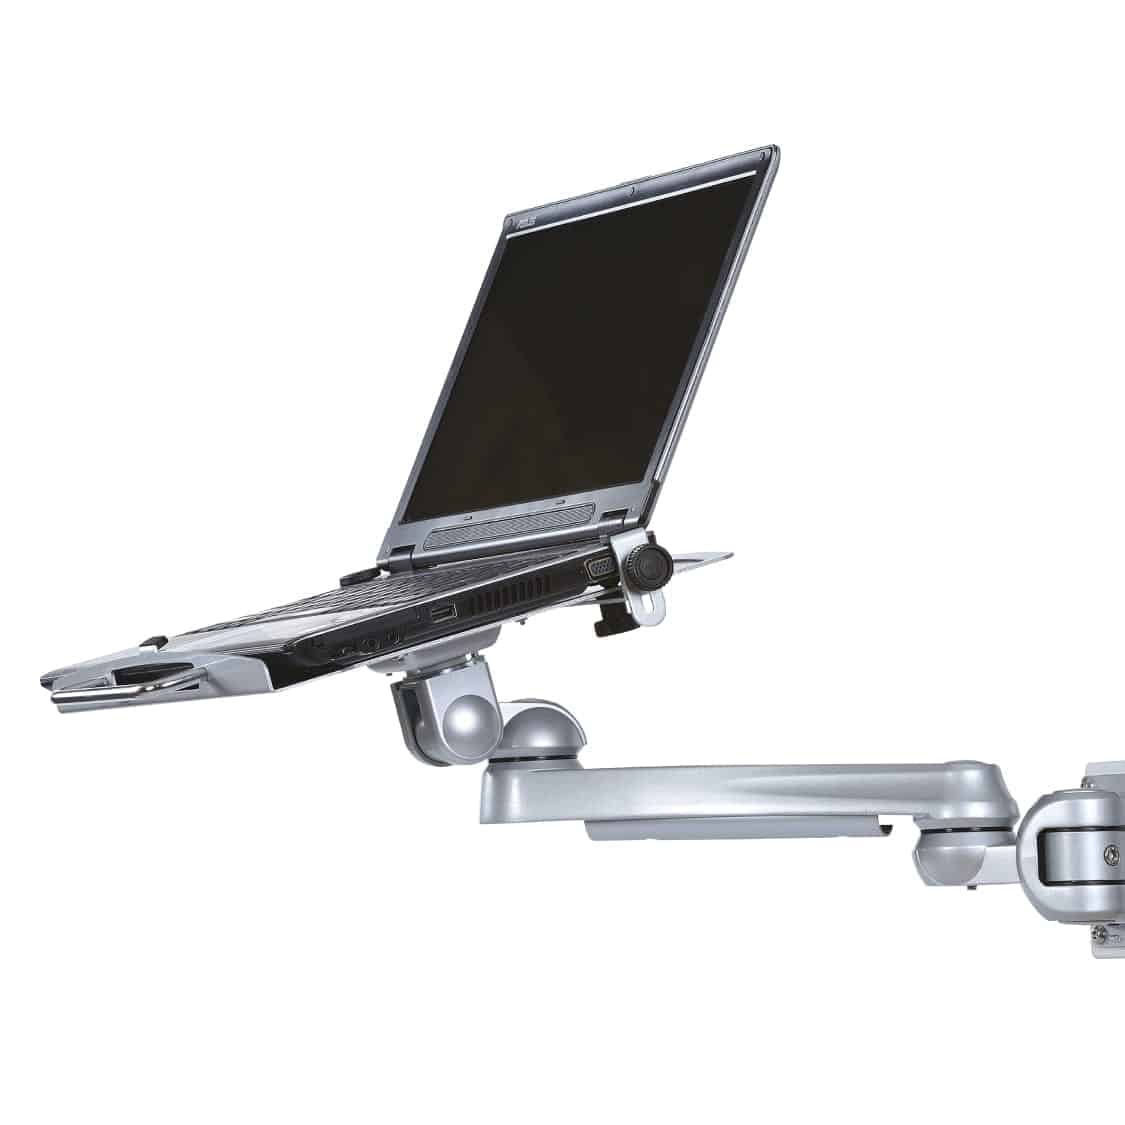 Monitor arm & laptop holder